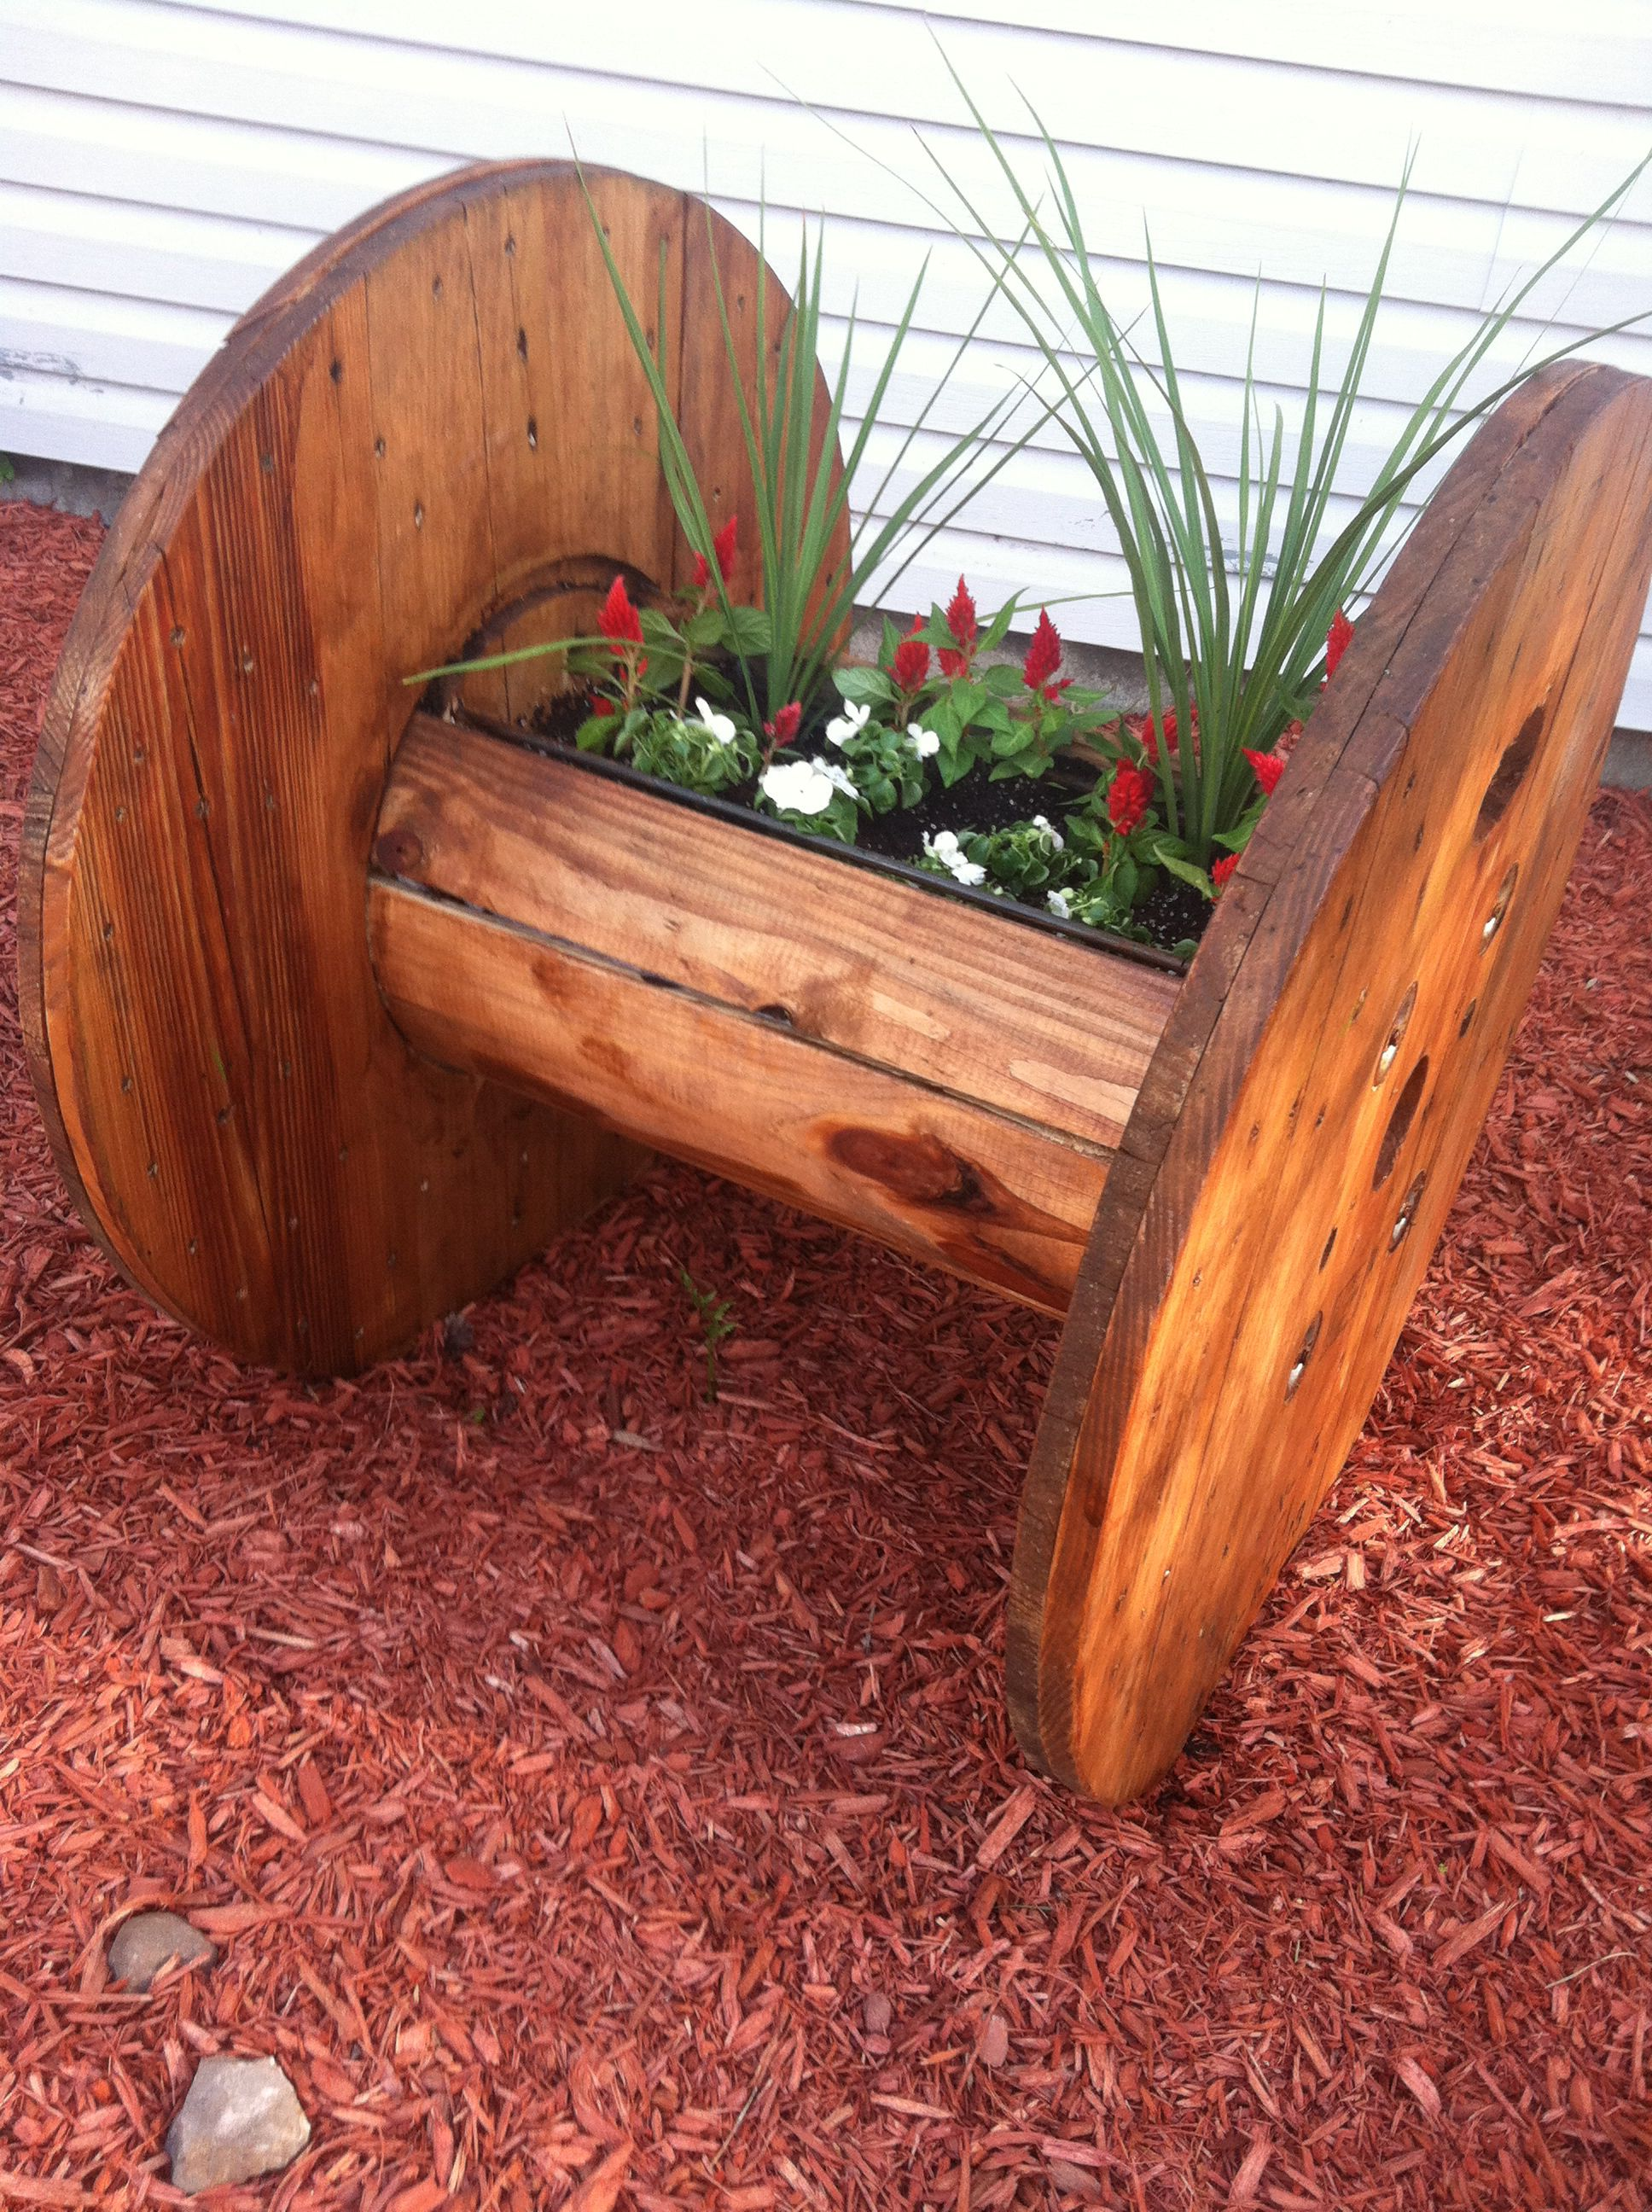 Do It Yourself Home Design: Cable Reel Planter I Just Finished.